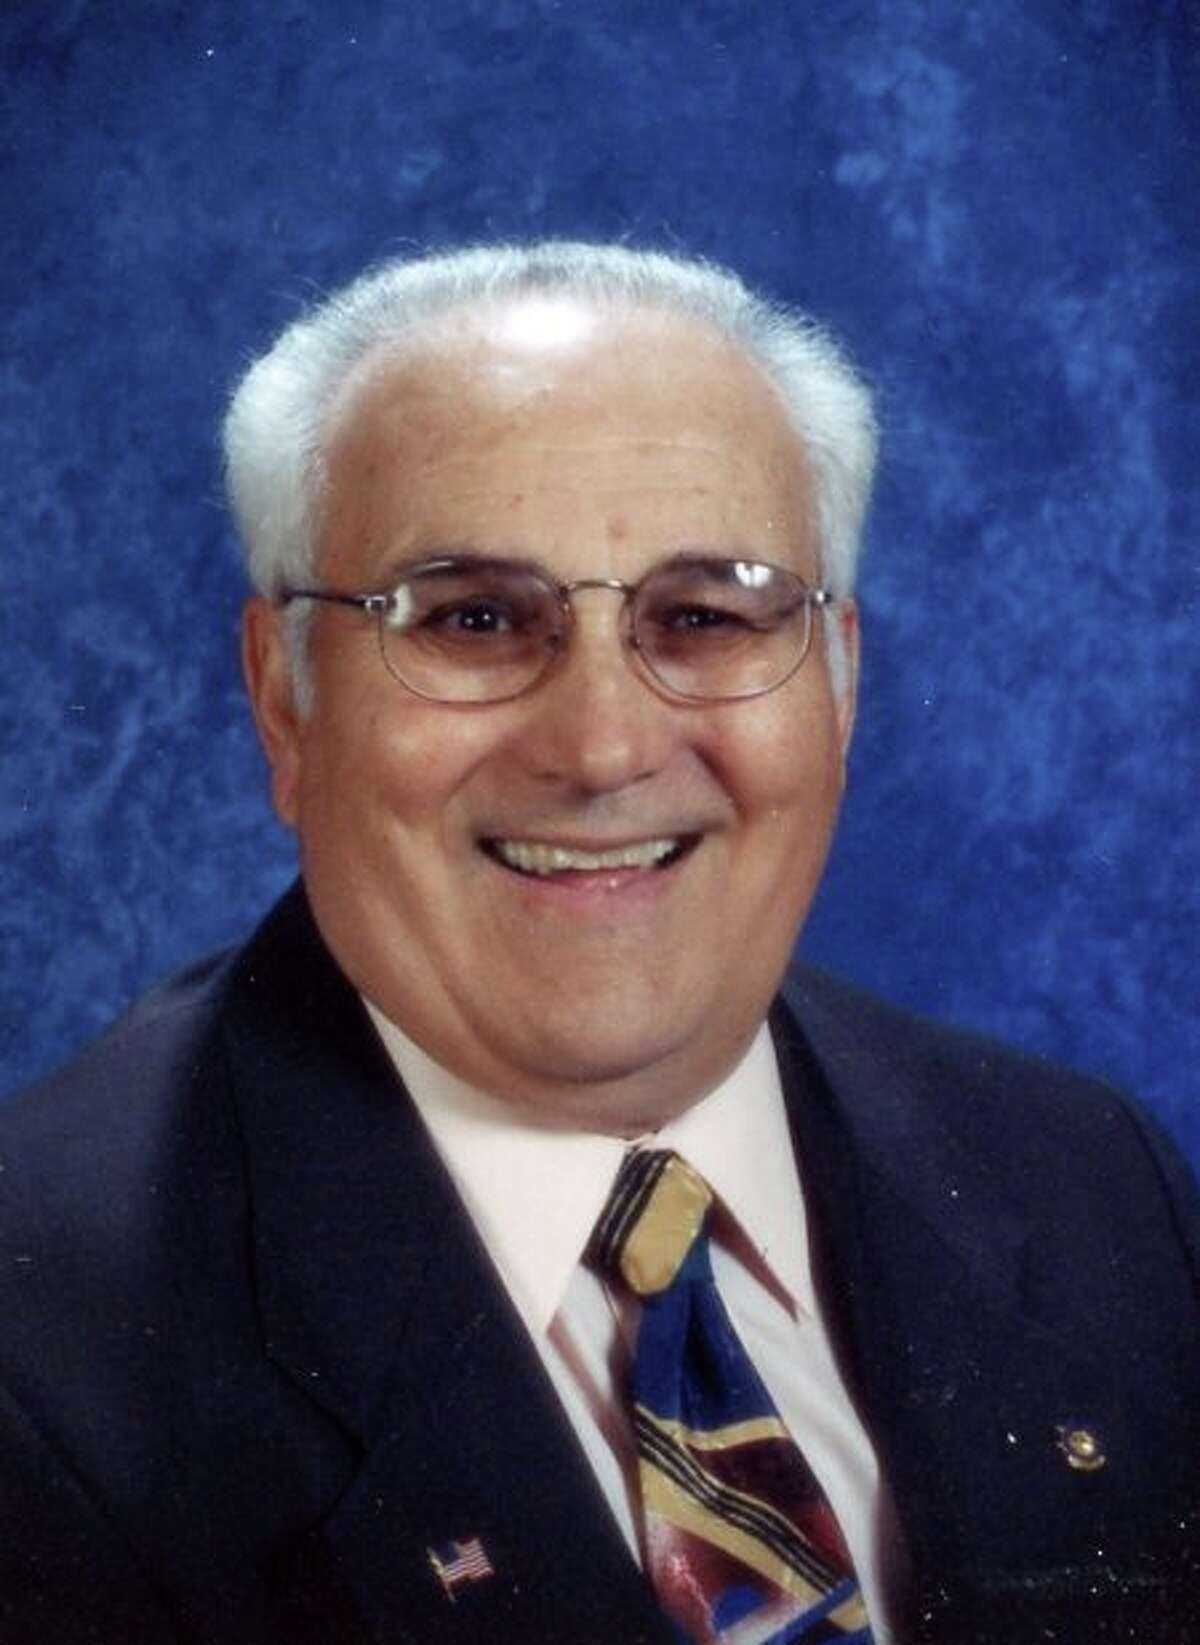 Steve Coycault Sr., a member of the 15th Texas Silver-Haired Legislature, which convened on July 14-18, 2013 in Austin.